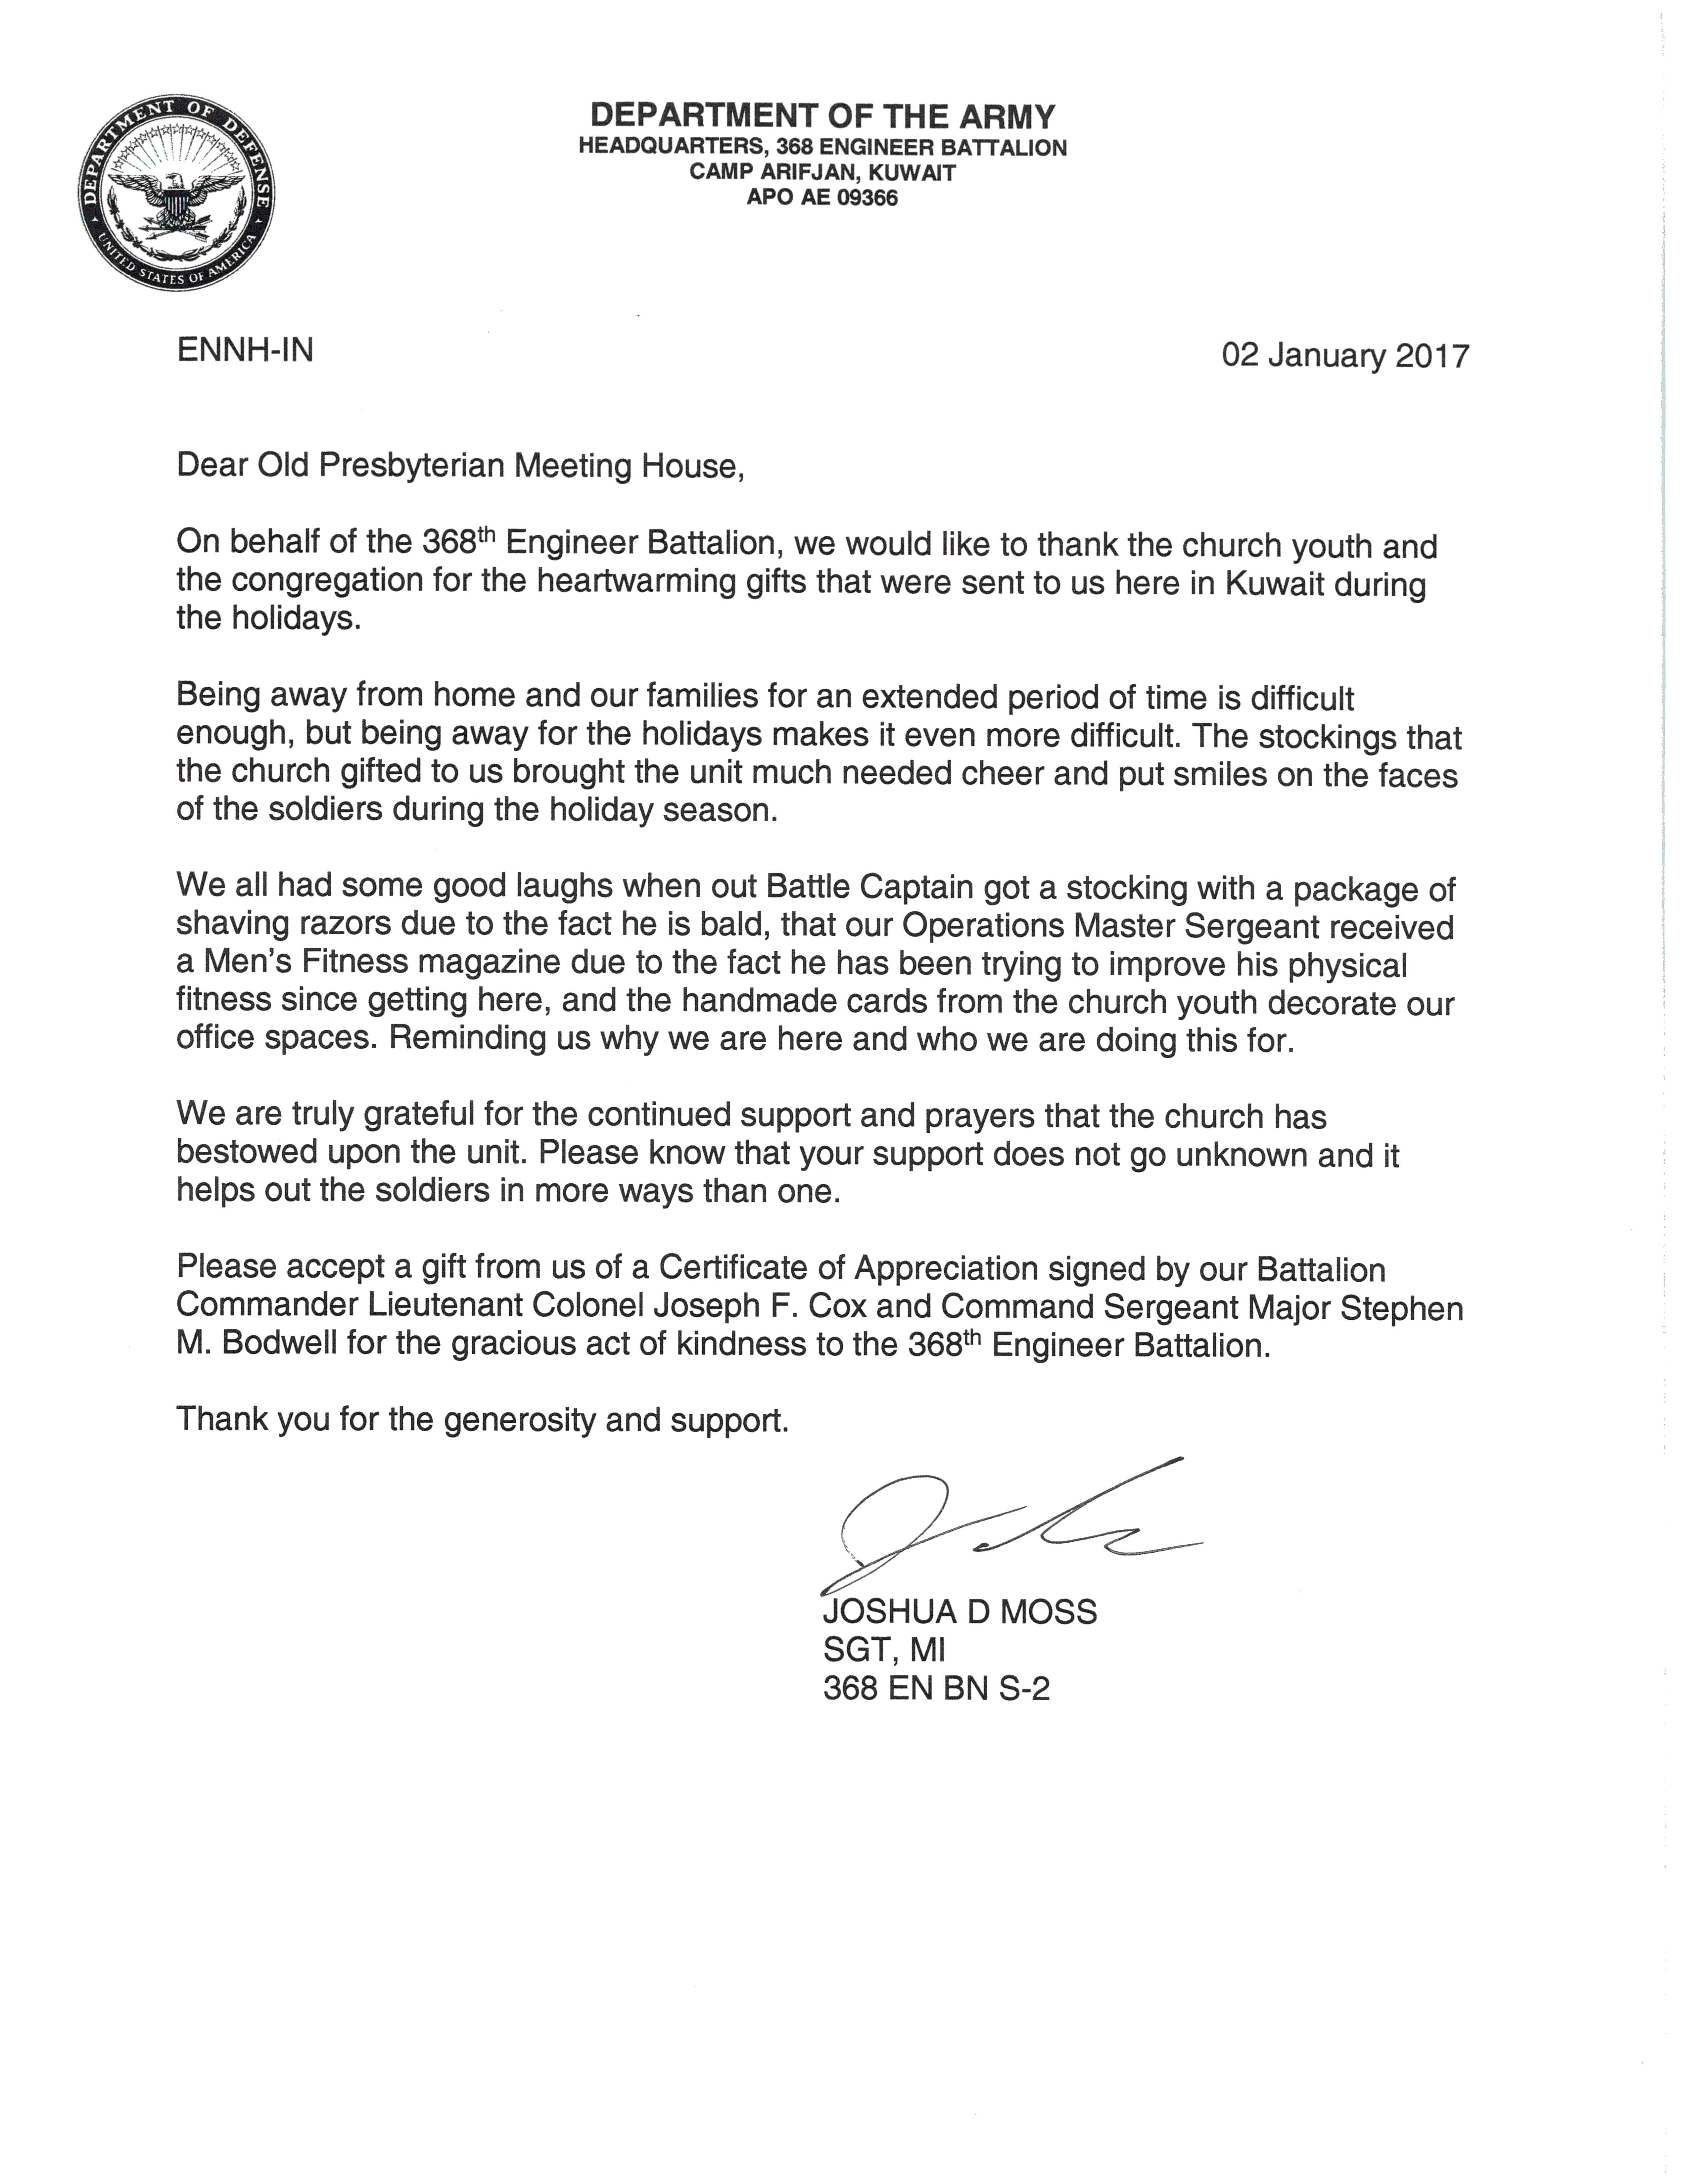 Letter from the Navy's 368th Engineer Battalion